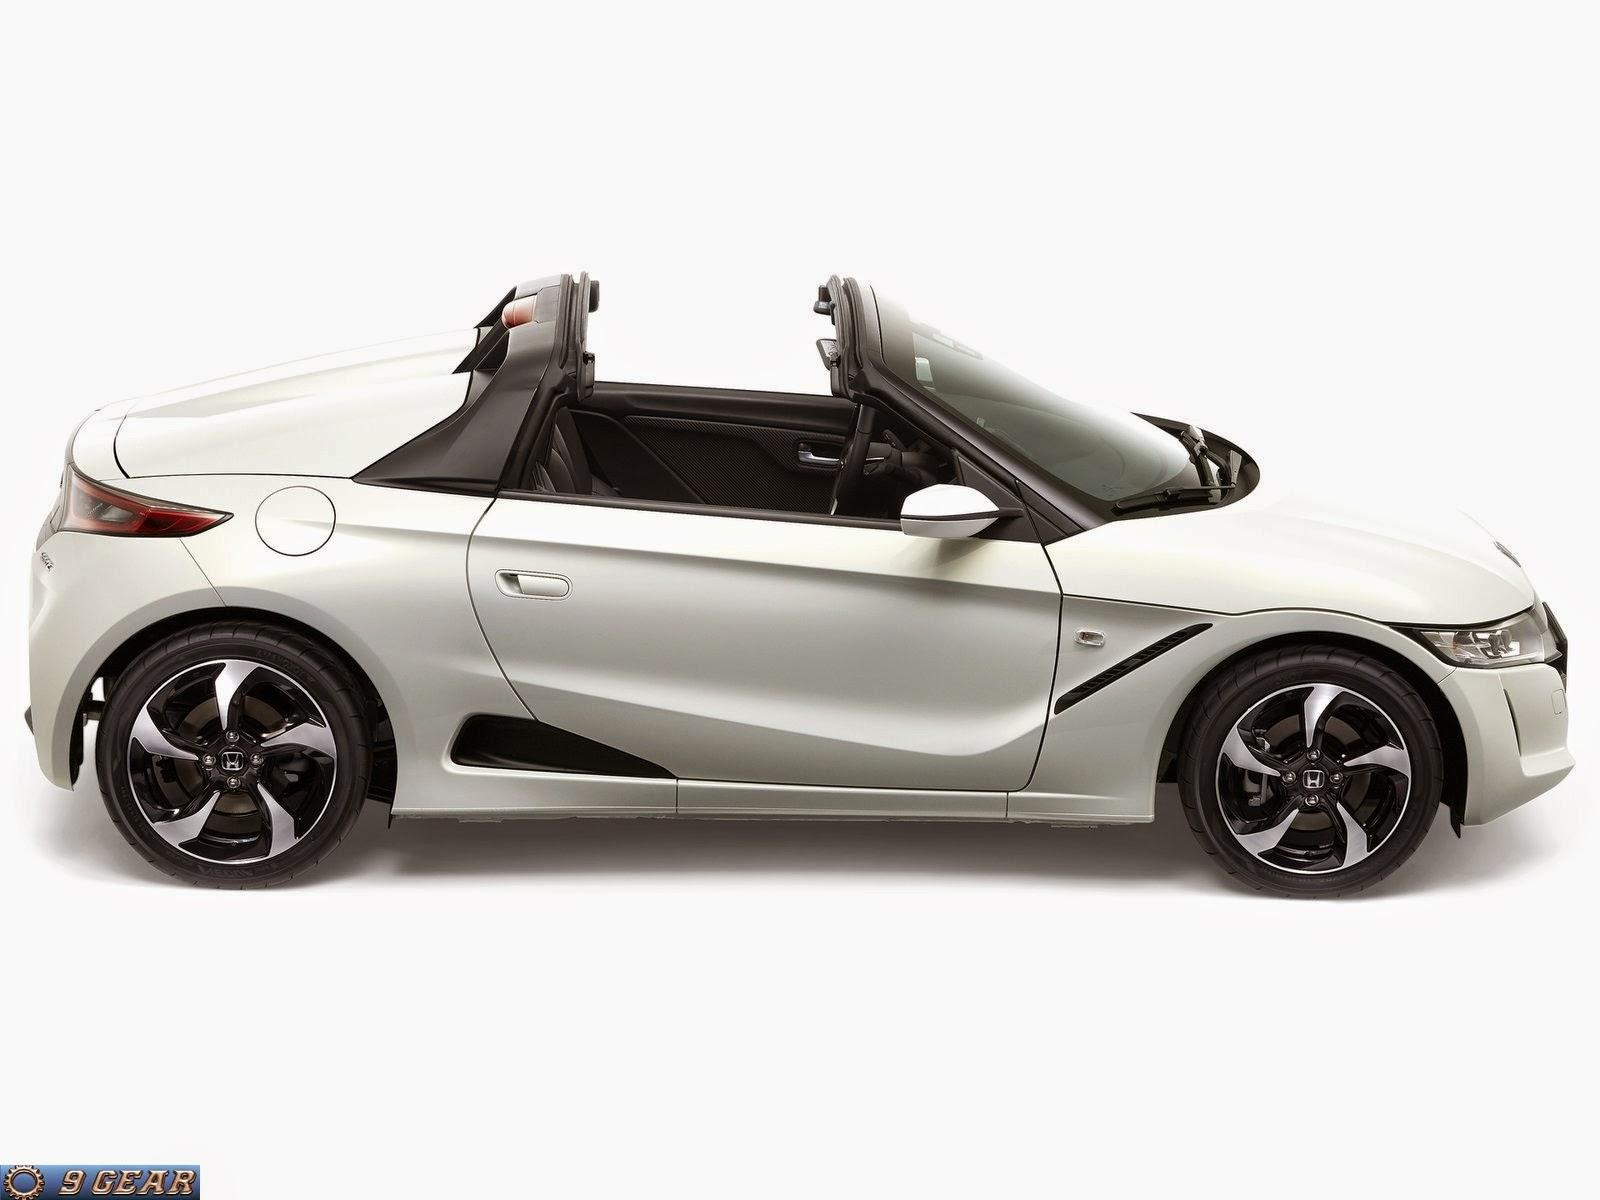 Honda S660 2 Seater Open Top Sports Car Reviews New Pictures For 2019 2020